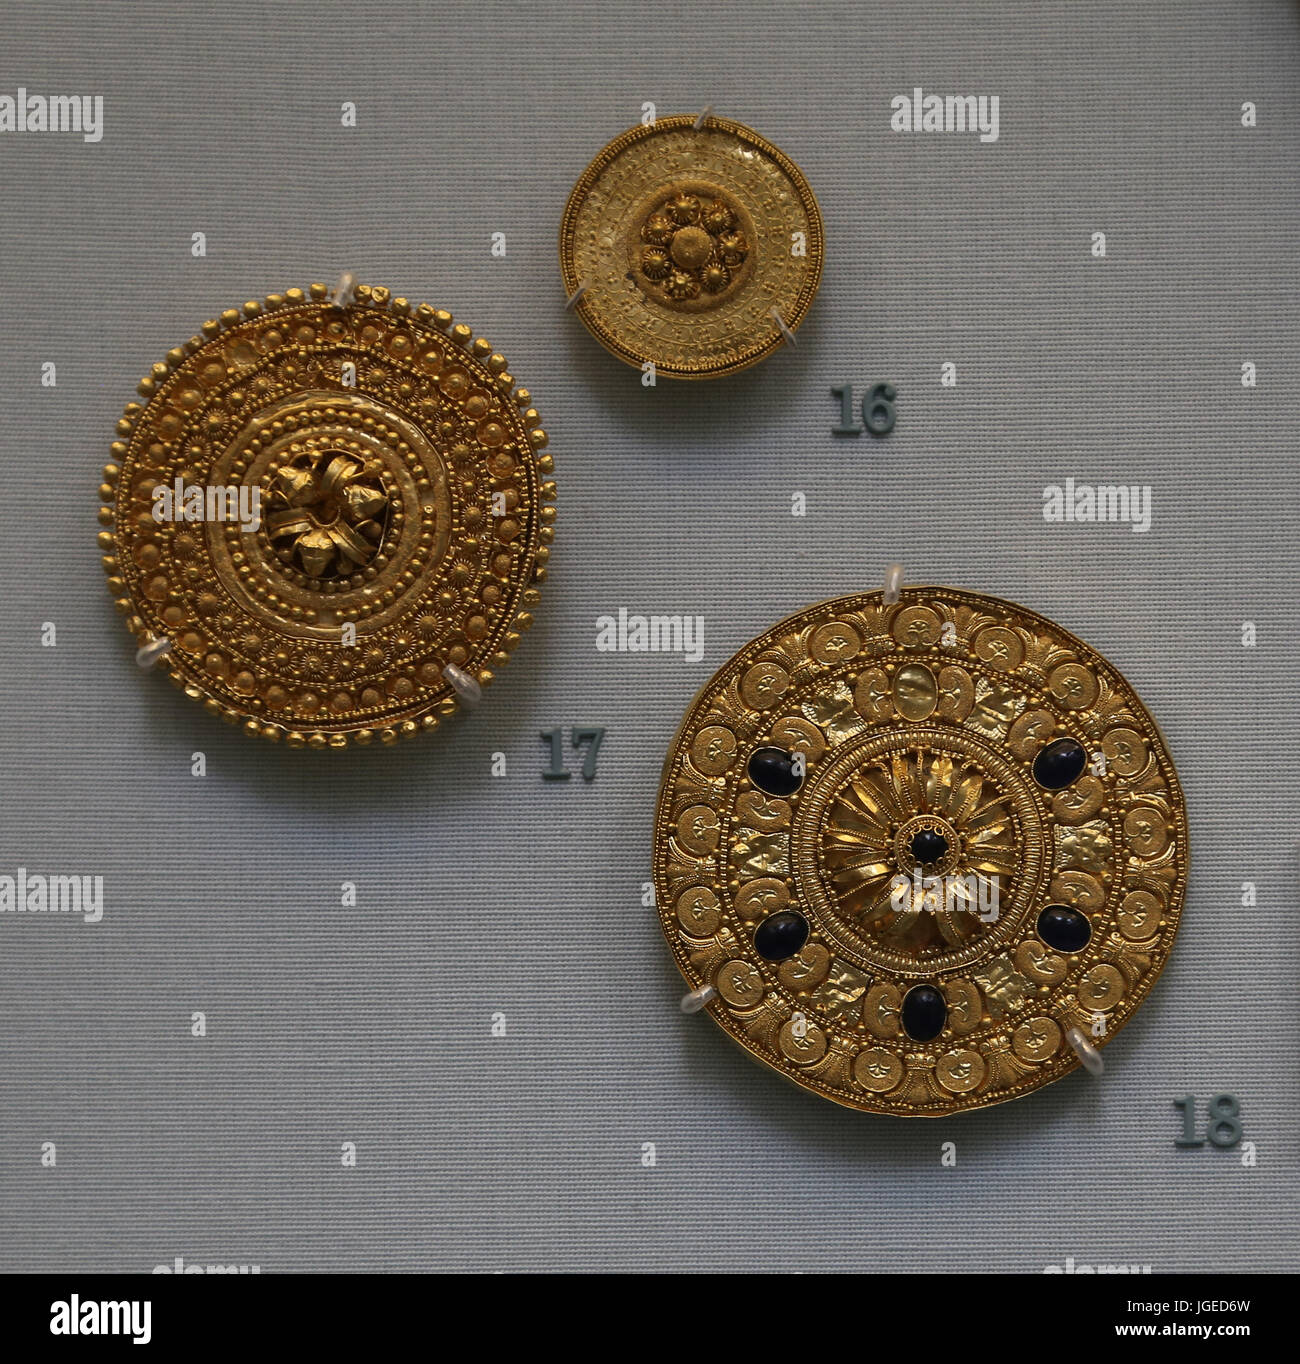 Gold ear-studs with a rosette sorrounted by concentric bands and vitreous glass paste. Etruscan, 530-480 BC. Italy. - Stock Image